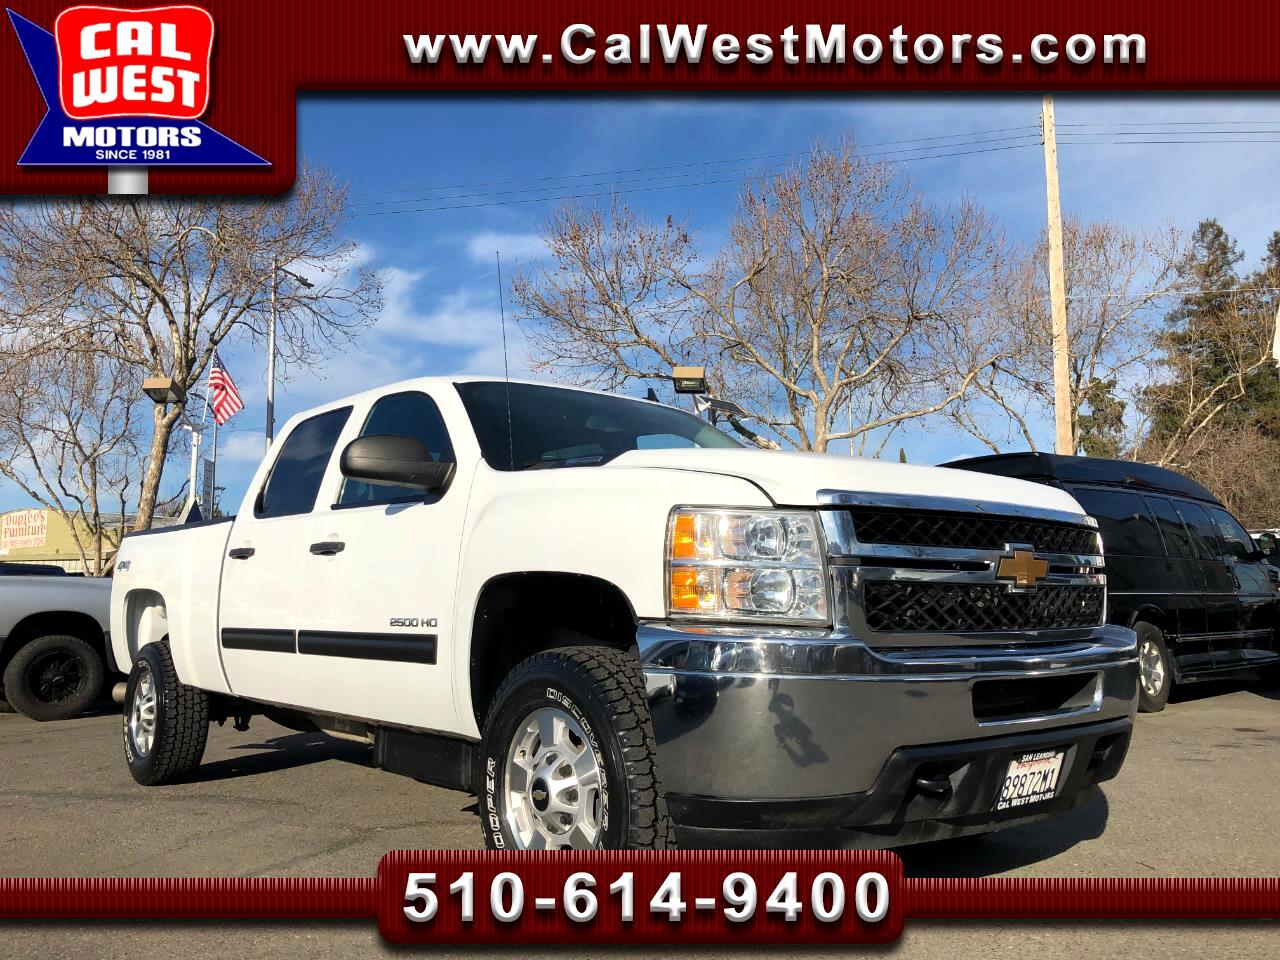 2014 Chevrolet Silverado 2500HD 4X4 Z71Off-Road LT Duramax-Alison SuperClean